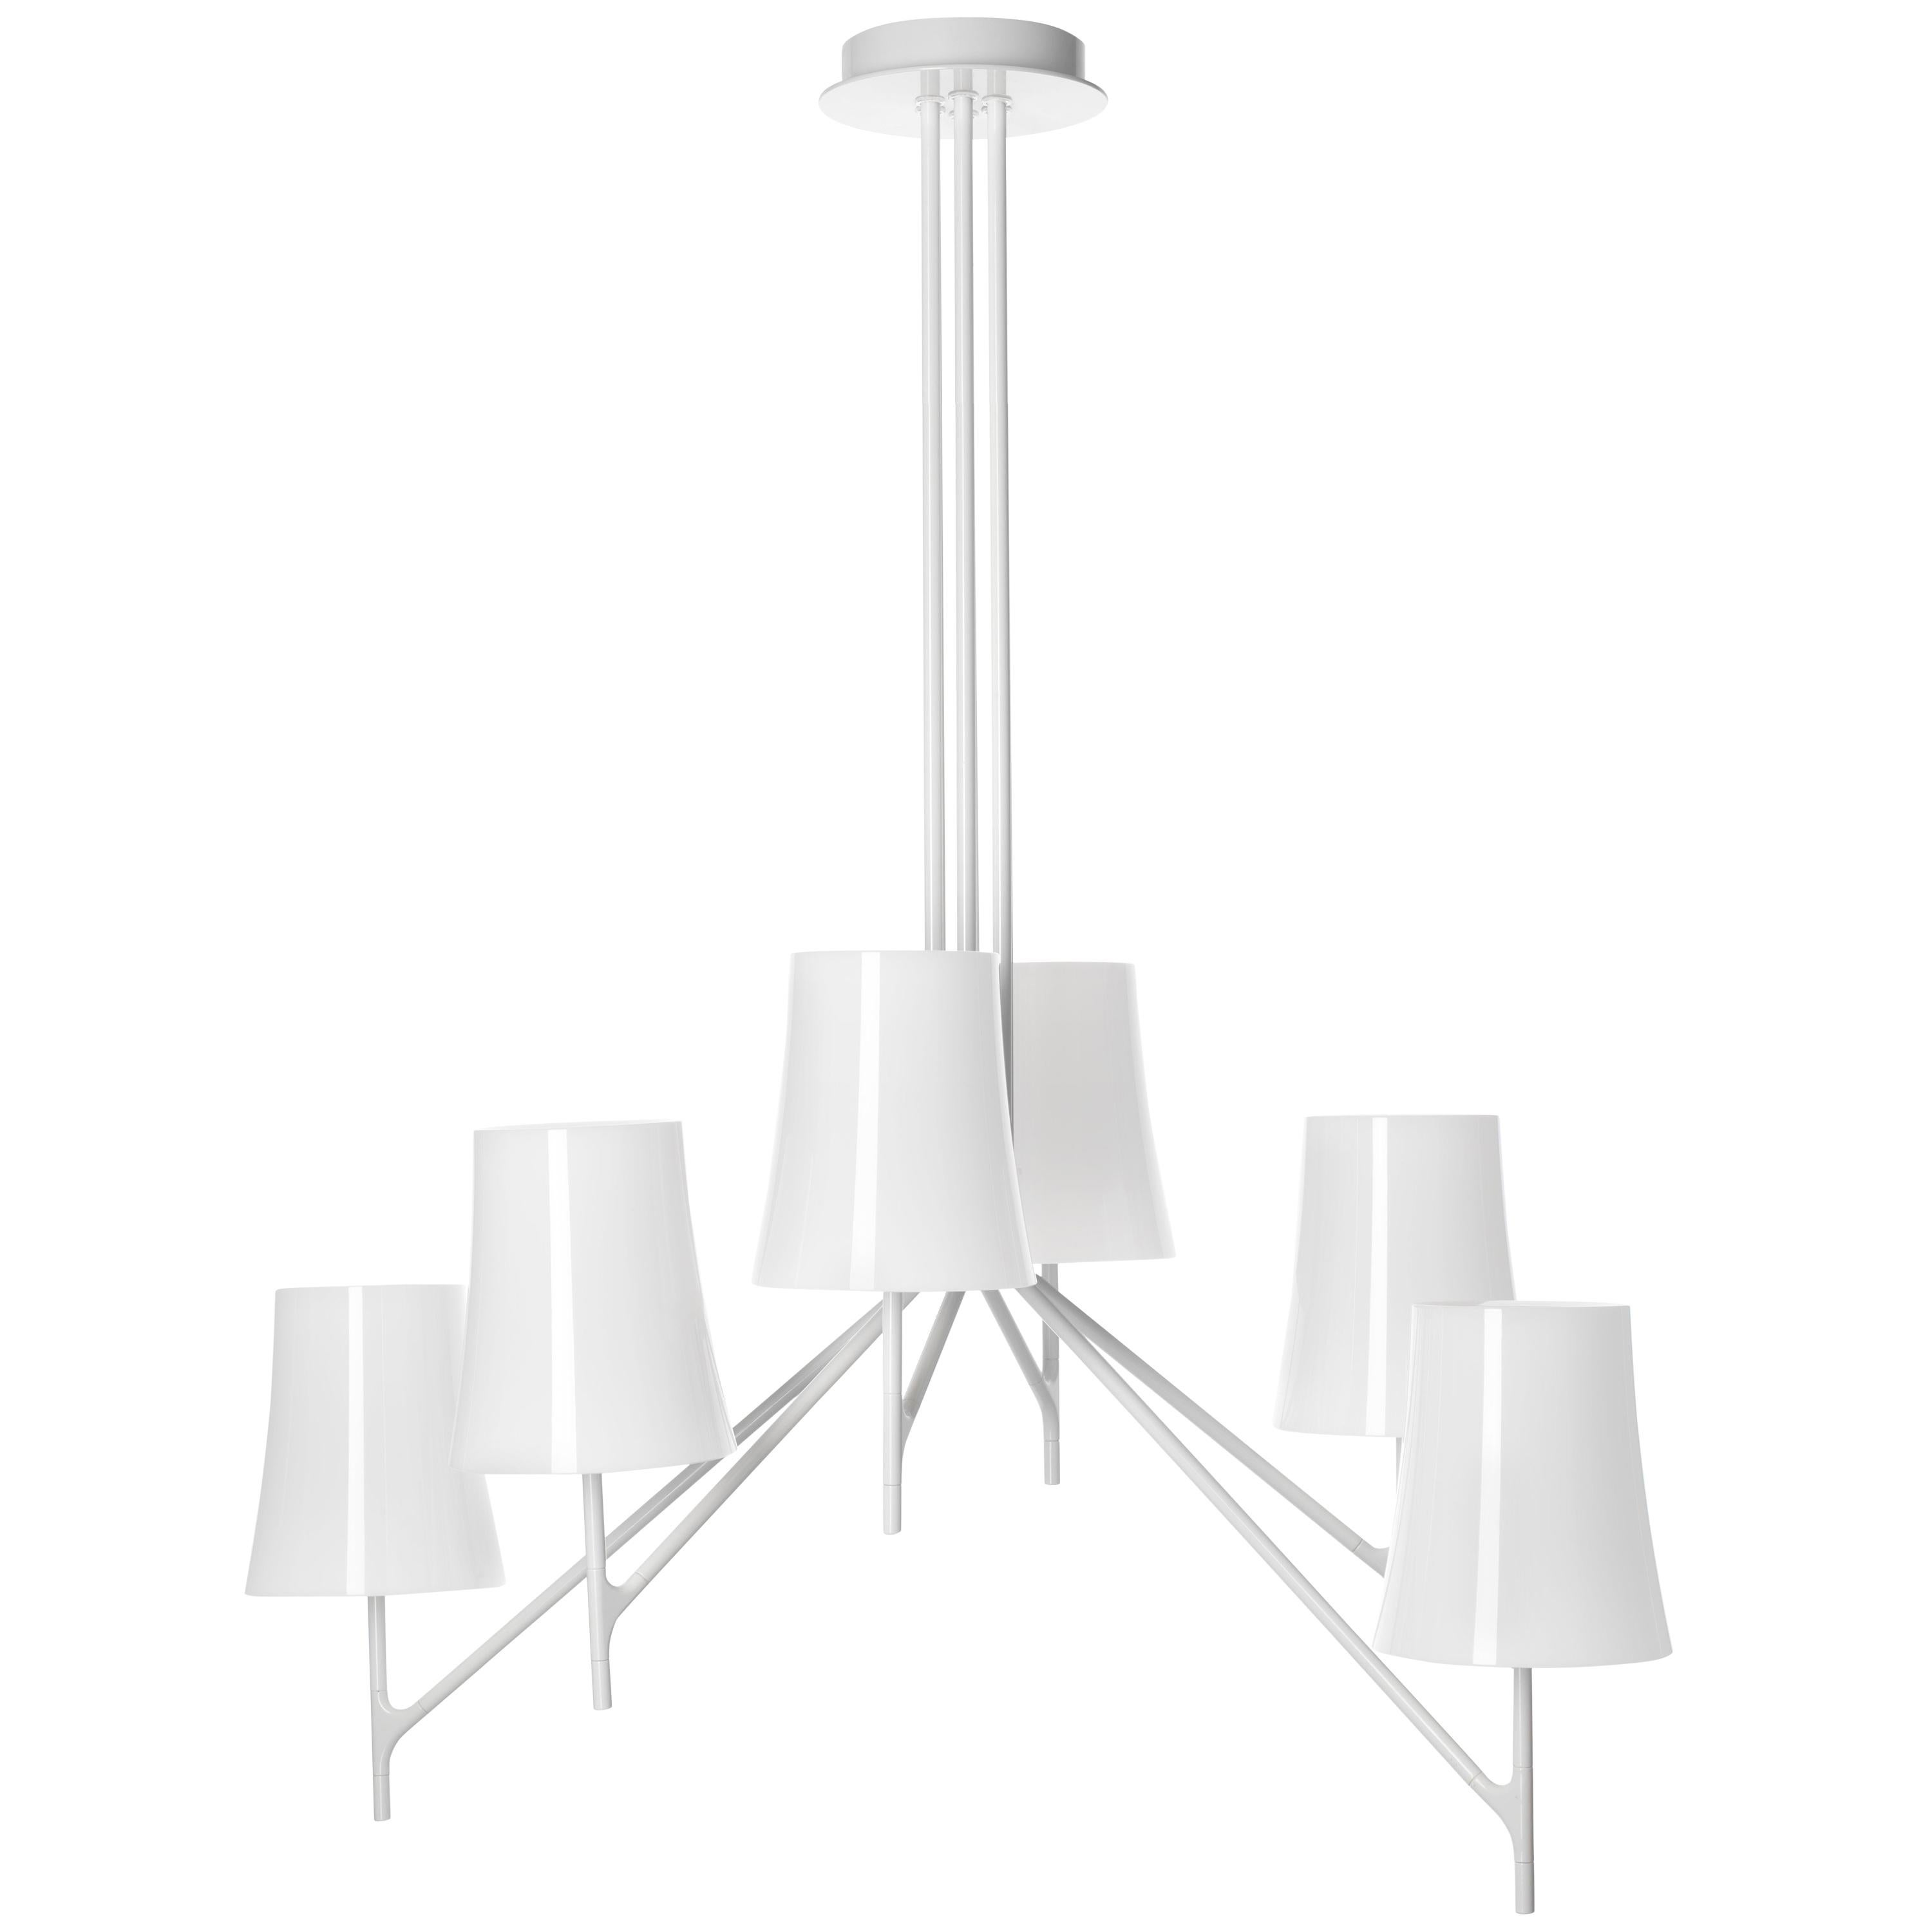 Foscarini Birdie 6 Chandelier in White by Ludovica and Roberto Palomba